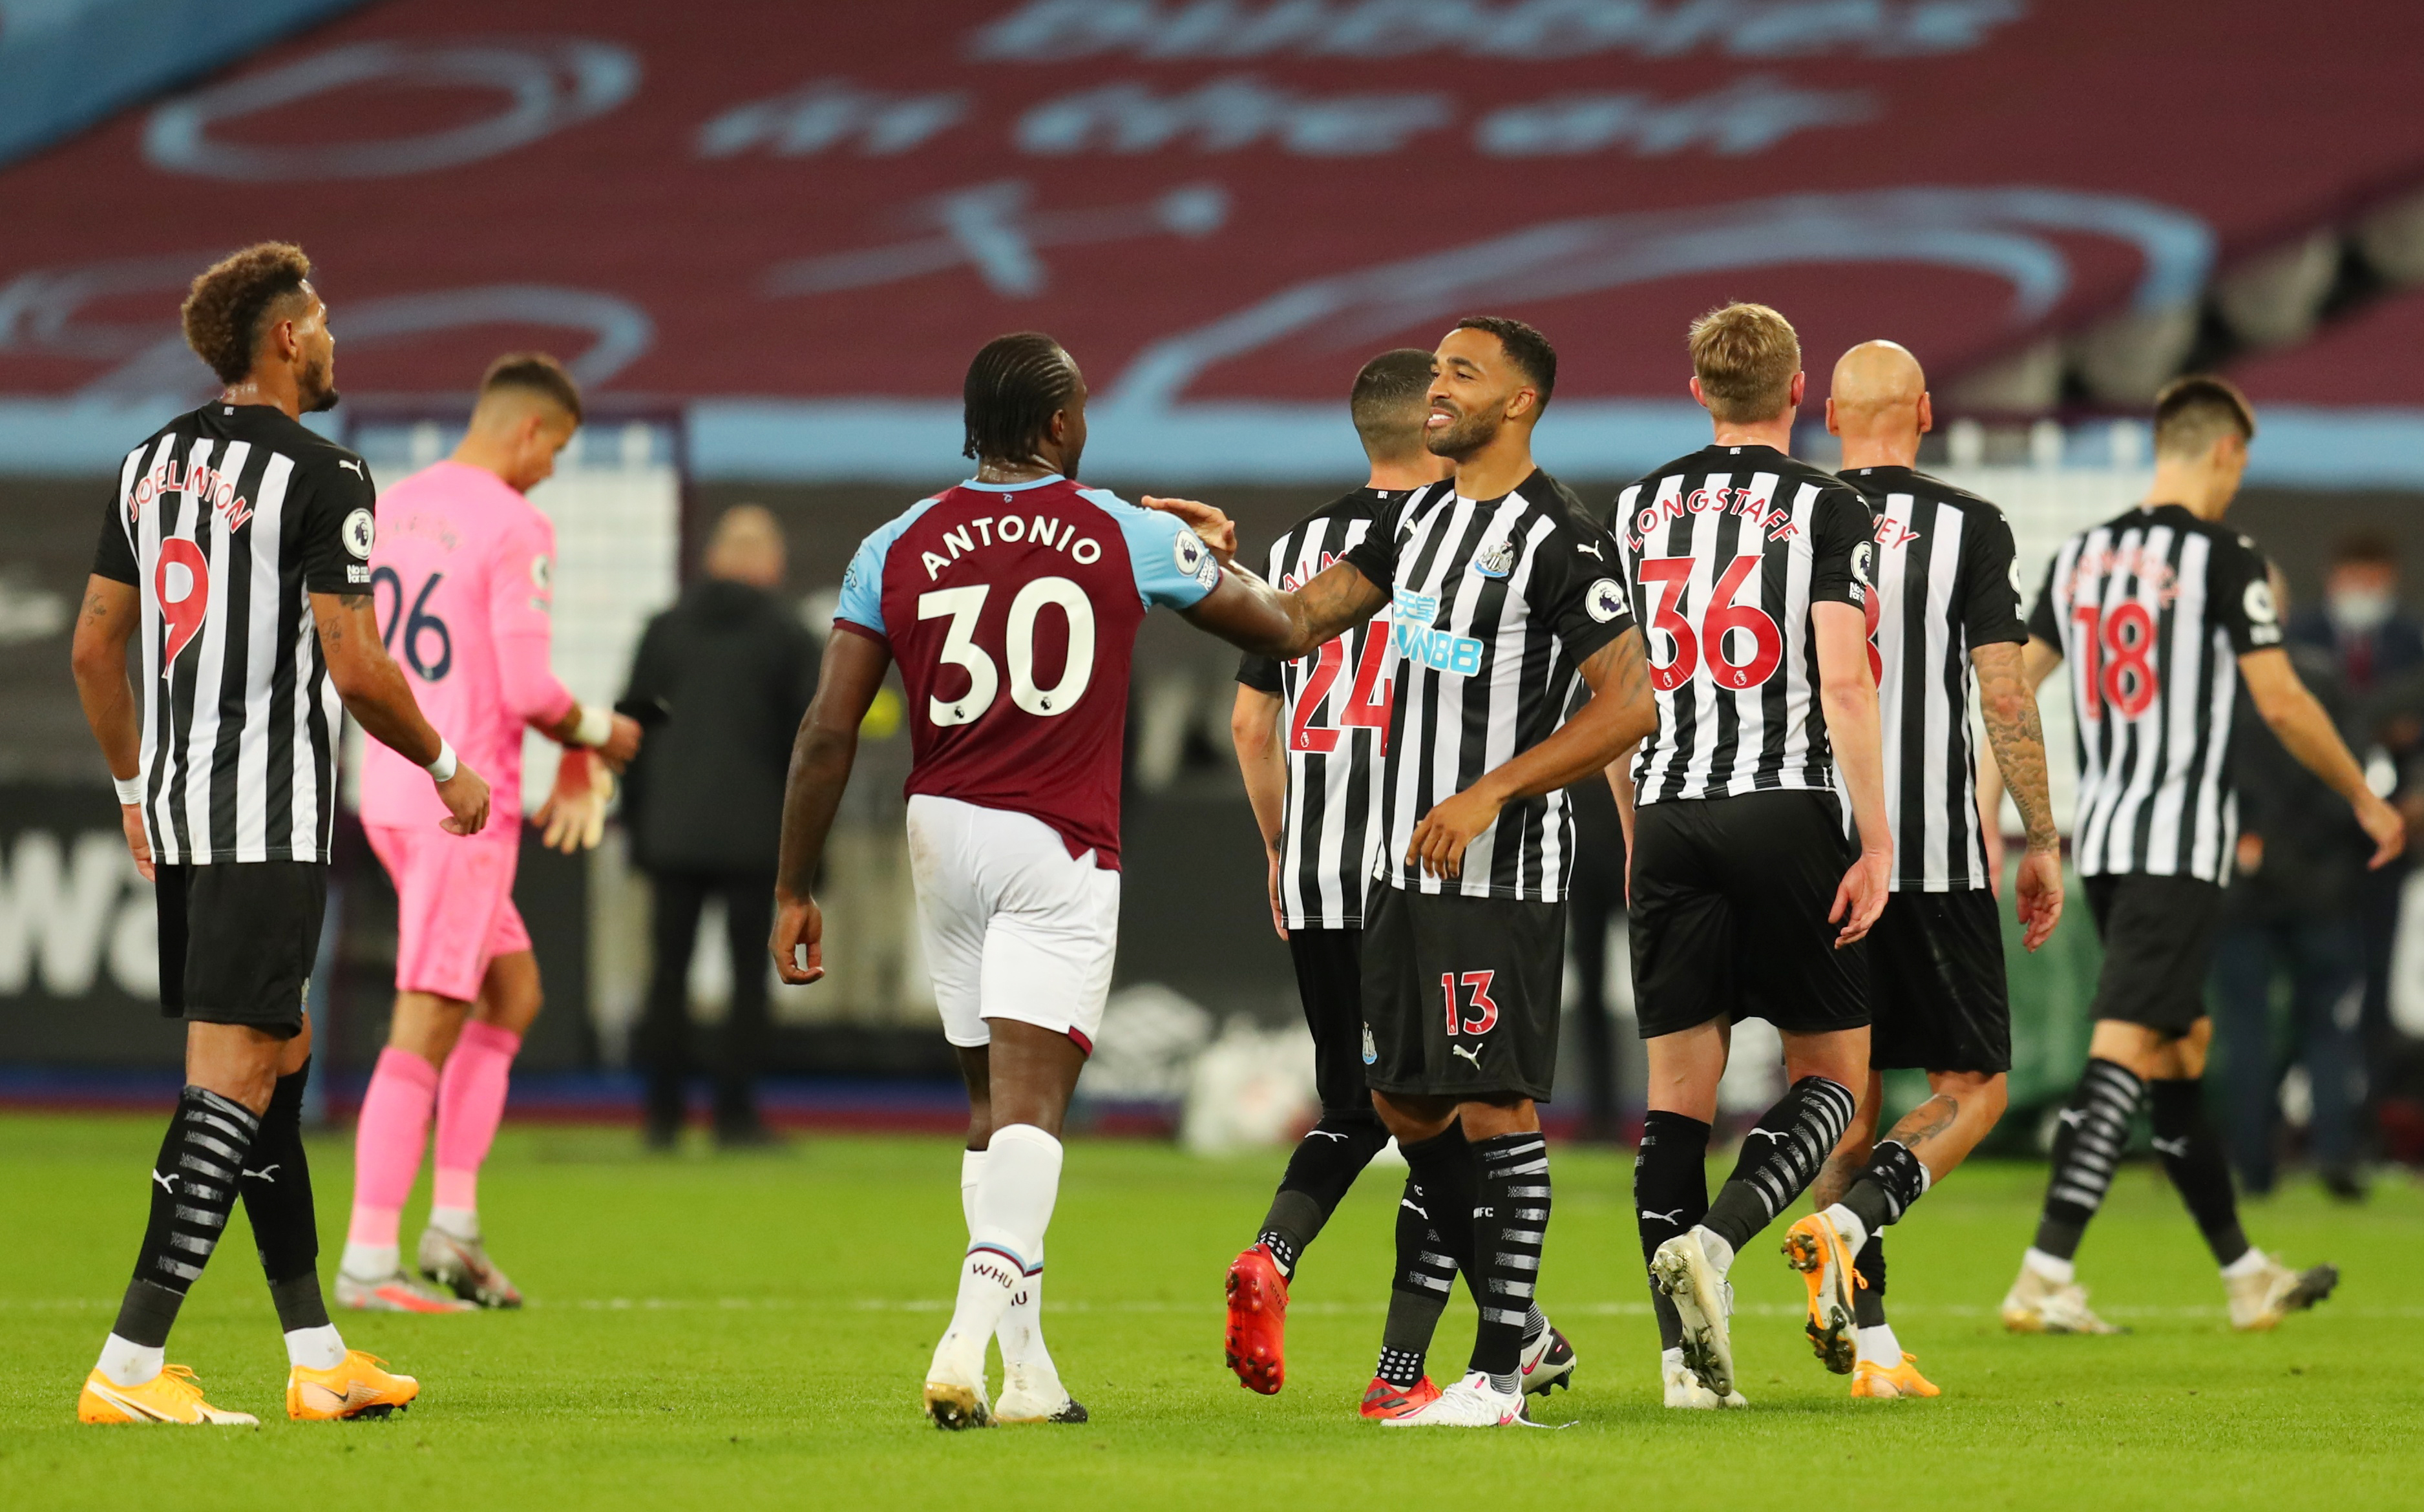 West Ham United's Michail Antonio and Newcastle United's Callum Wilson after the match. Photo: Reuters